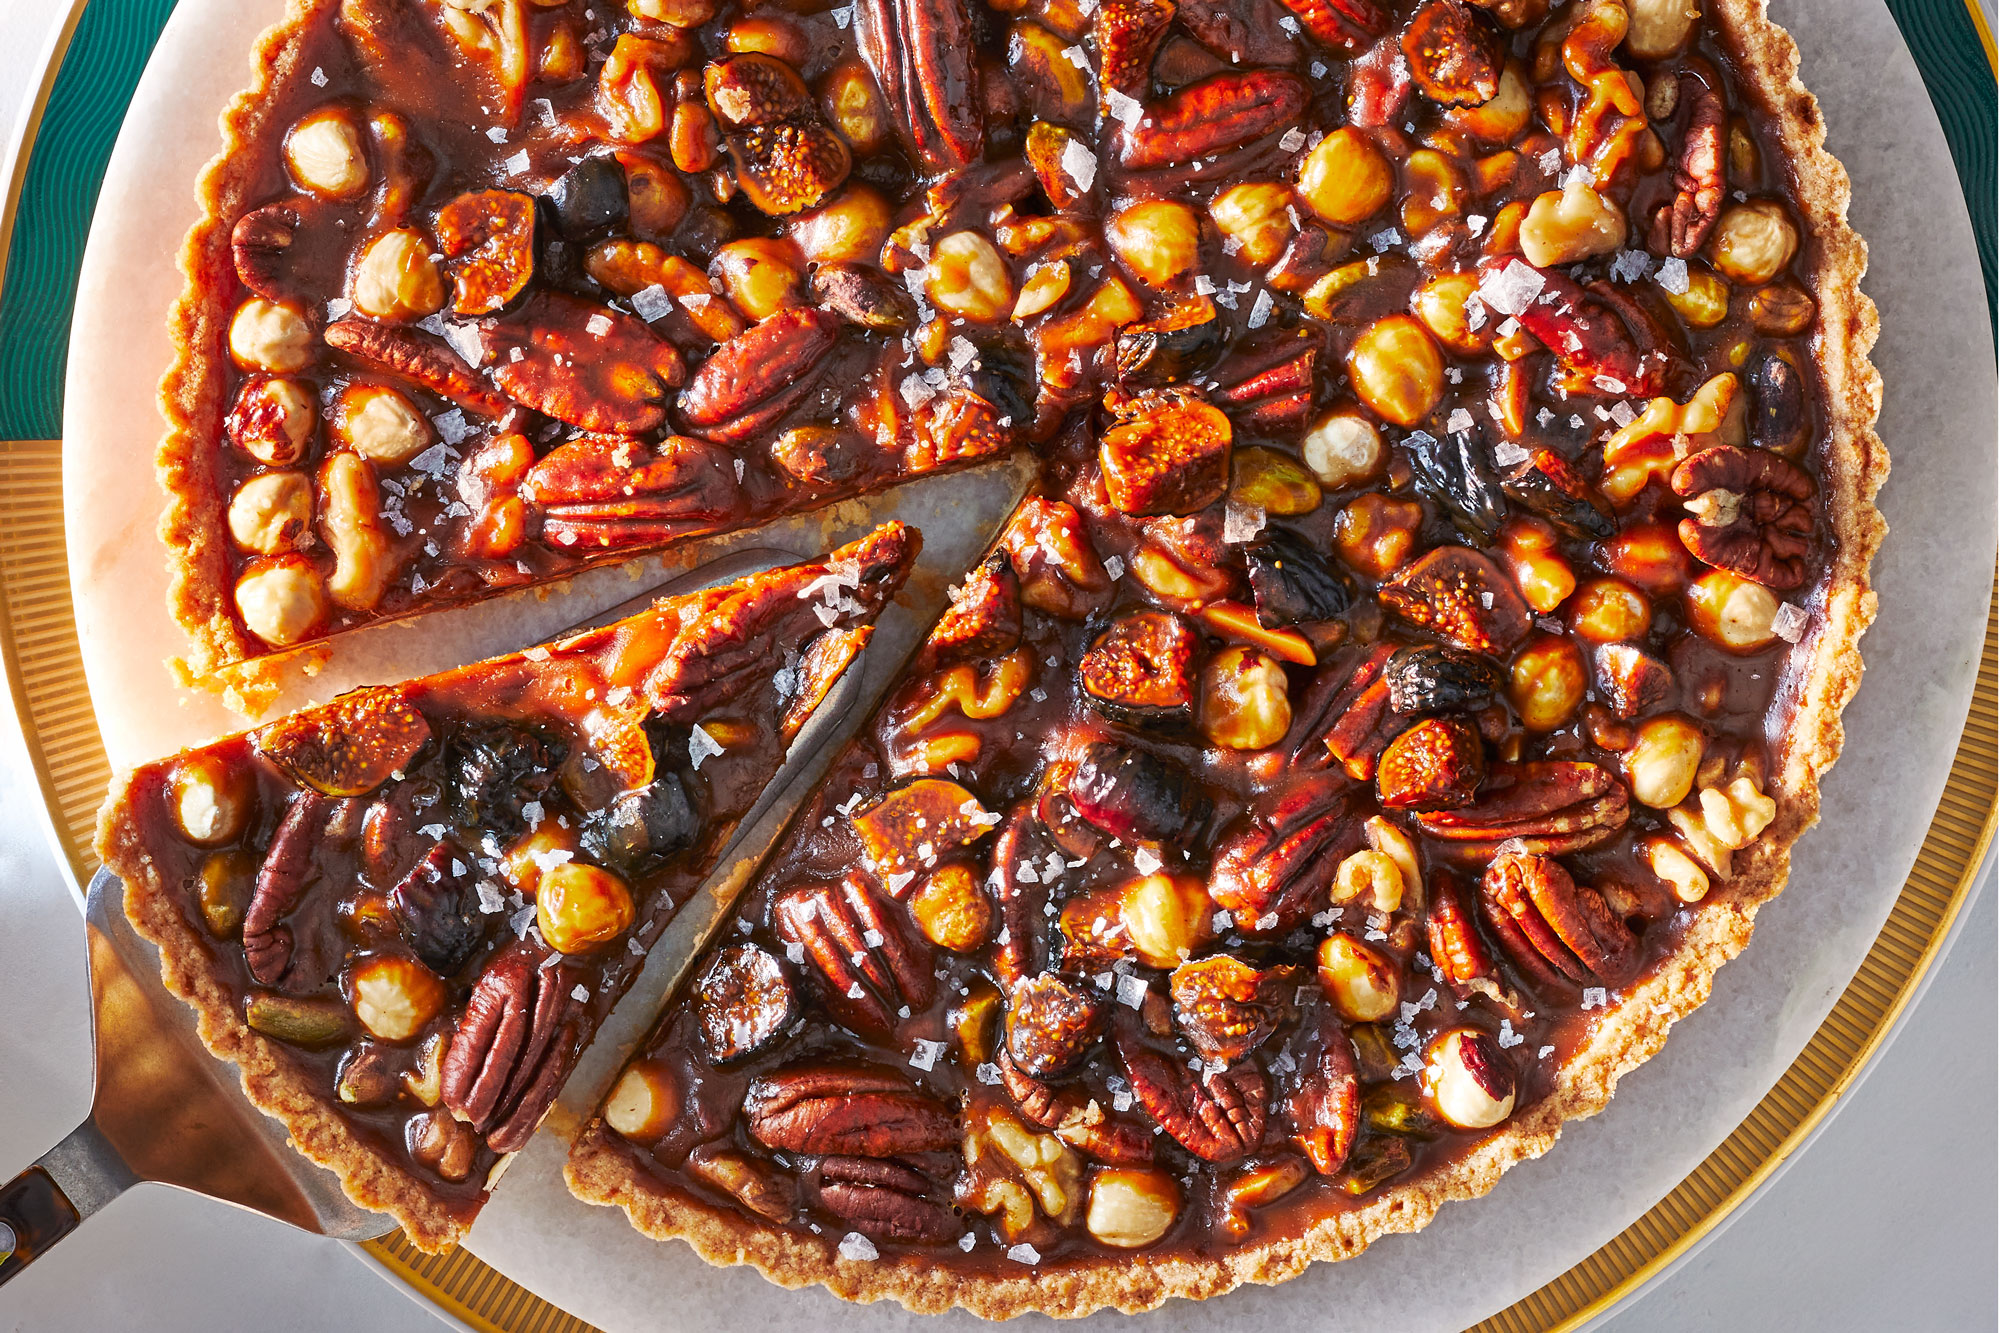 Fig and Caramel Nut Tart